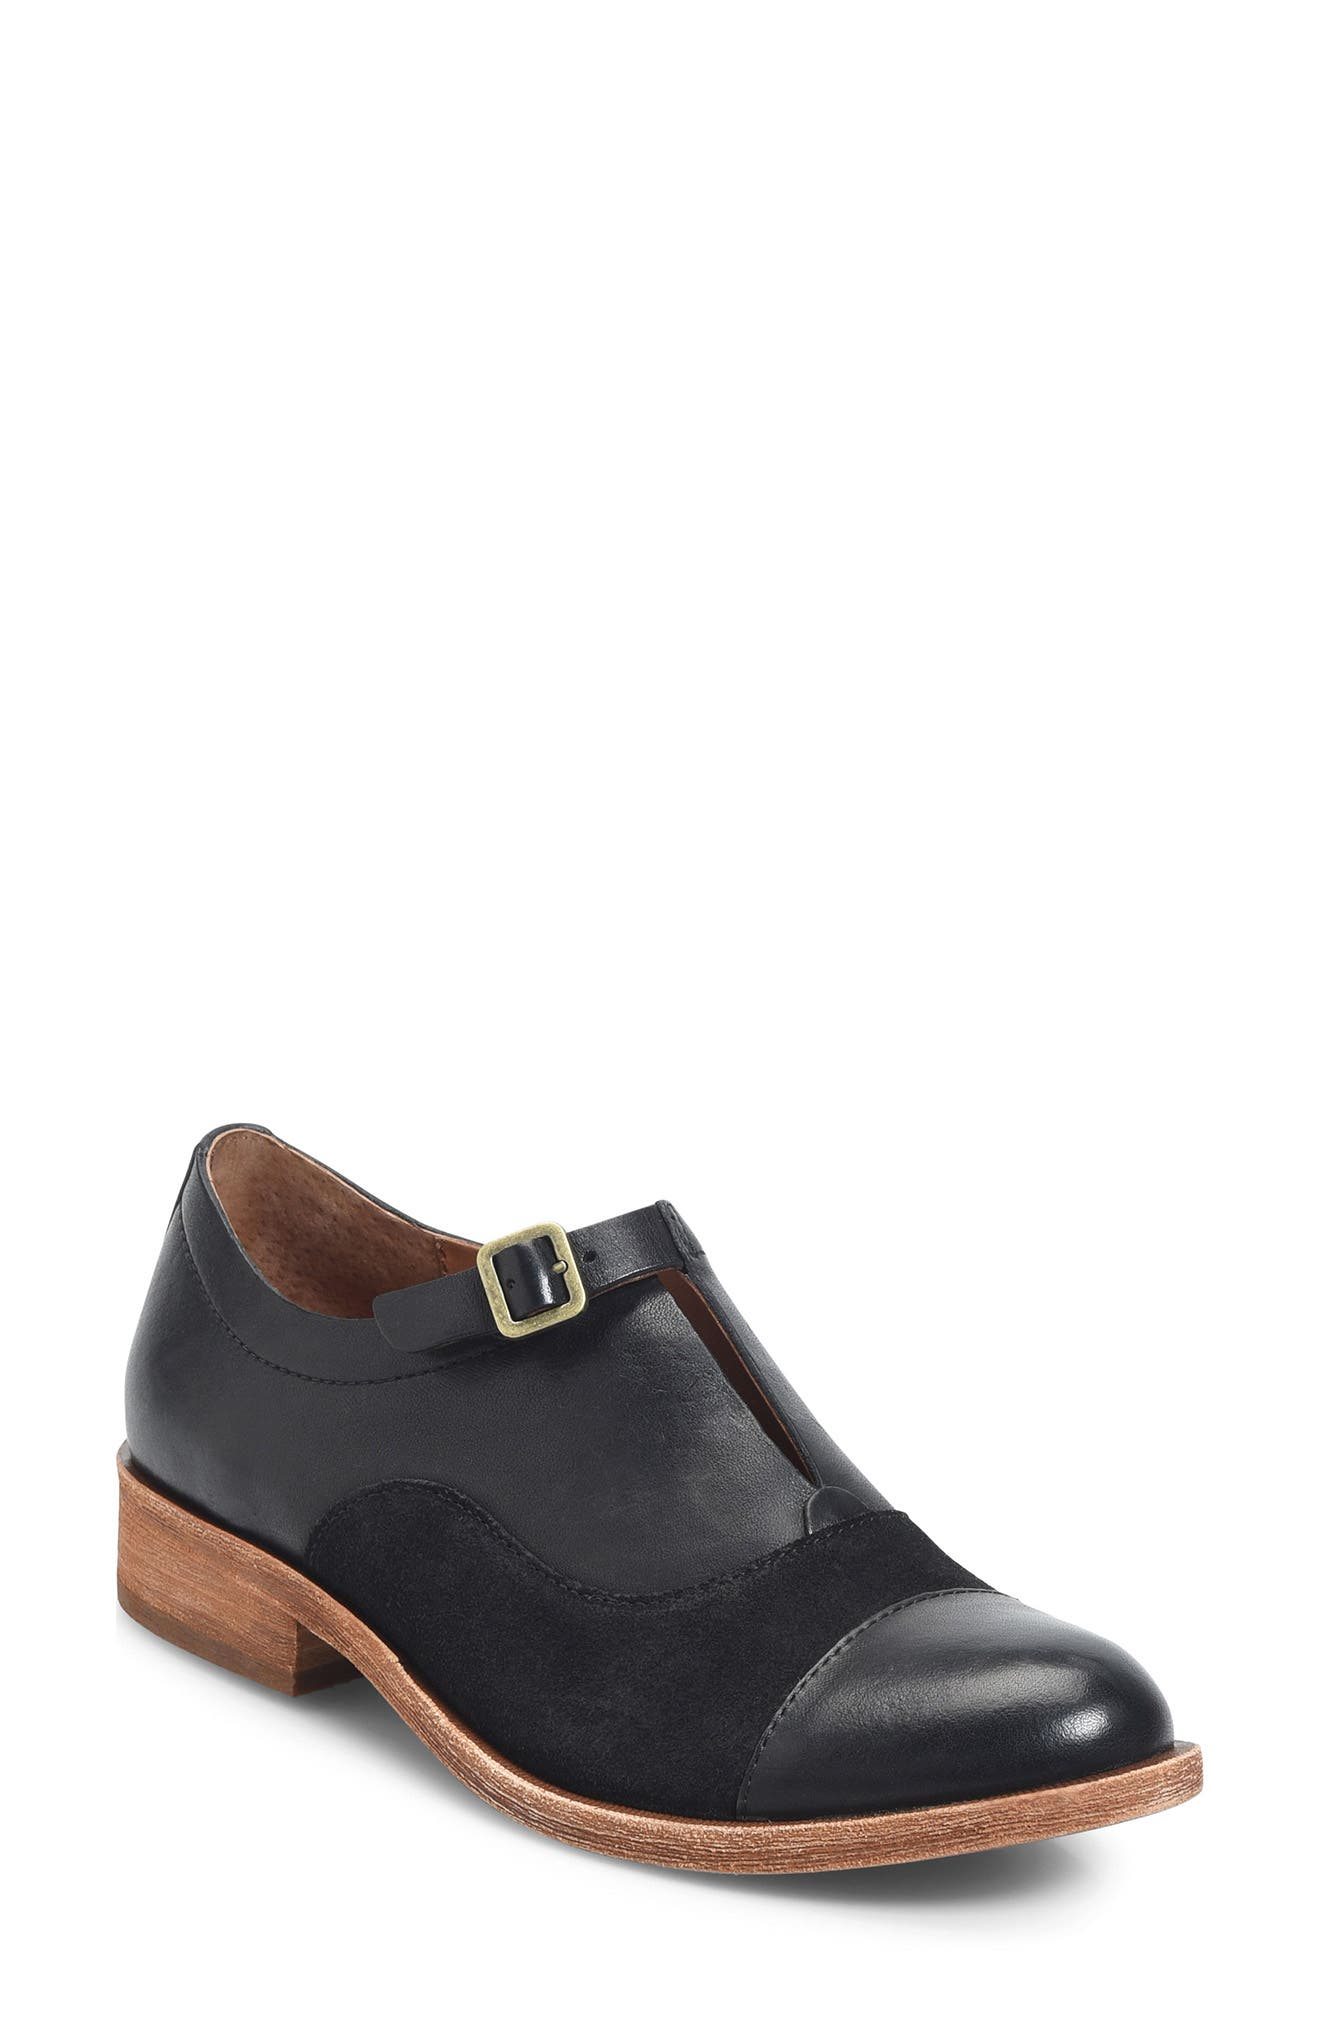 'Niseda' Oxford,                         Main,                         color, Black Leather Suede Combo